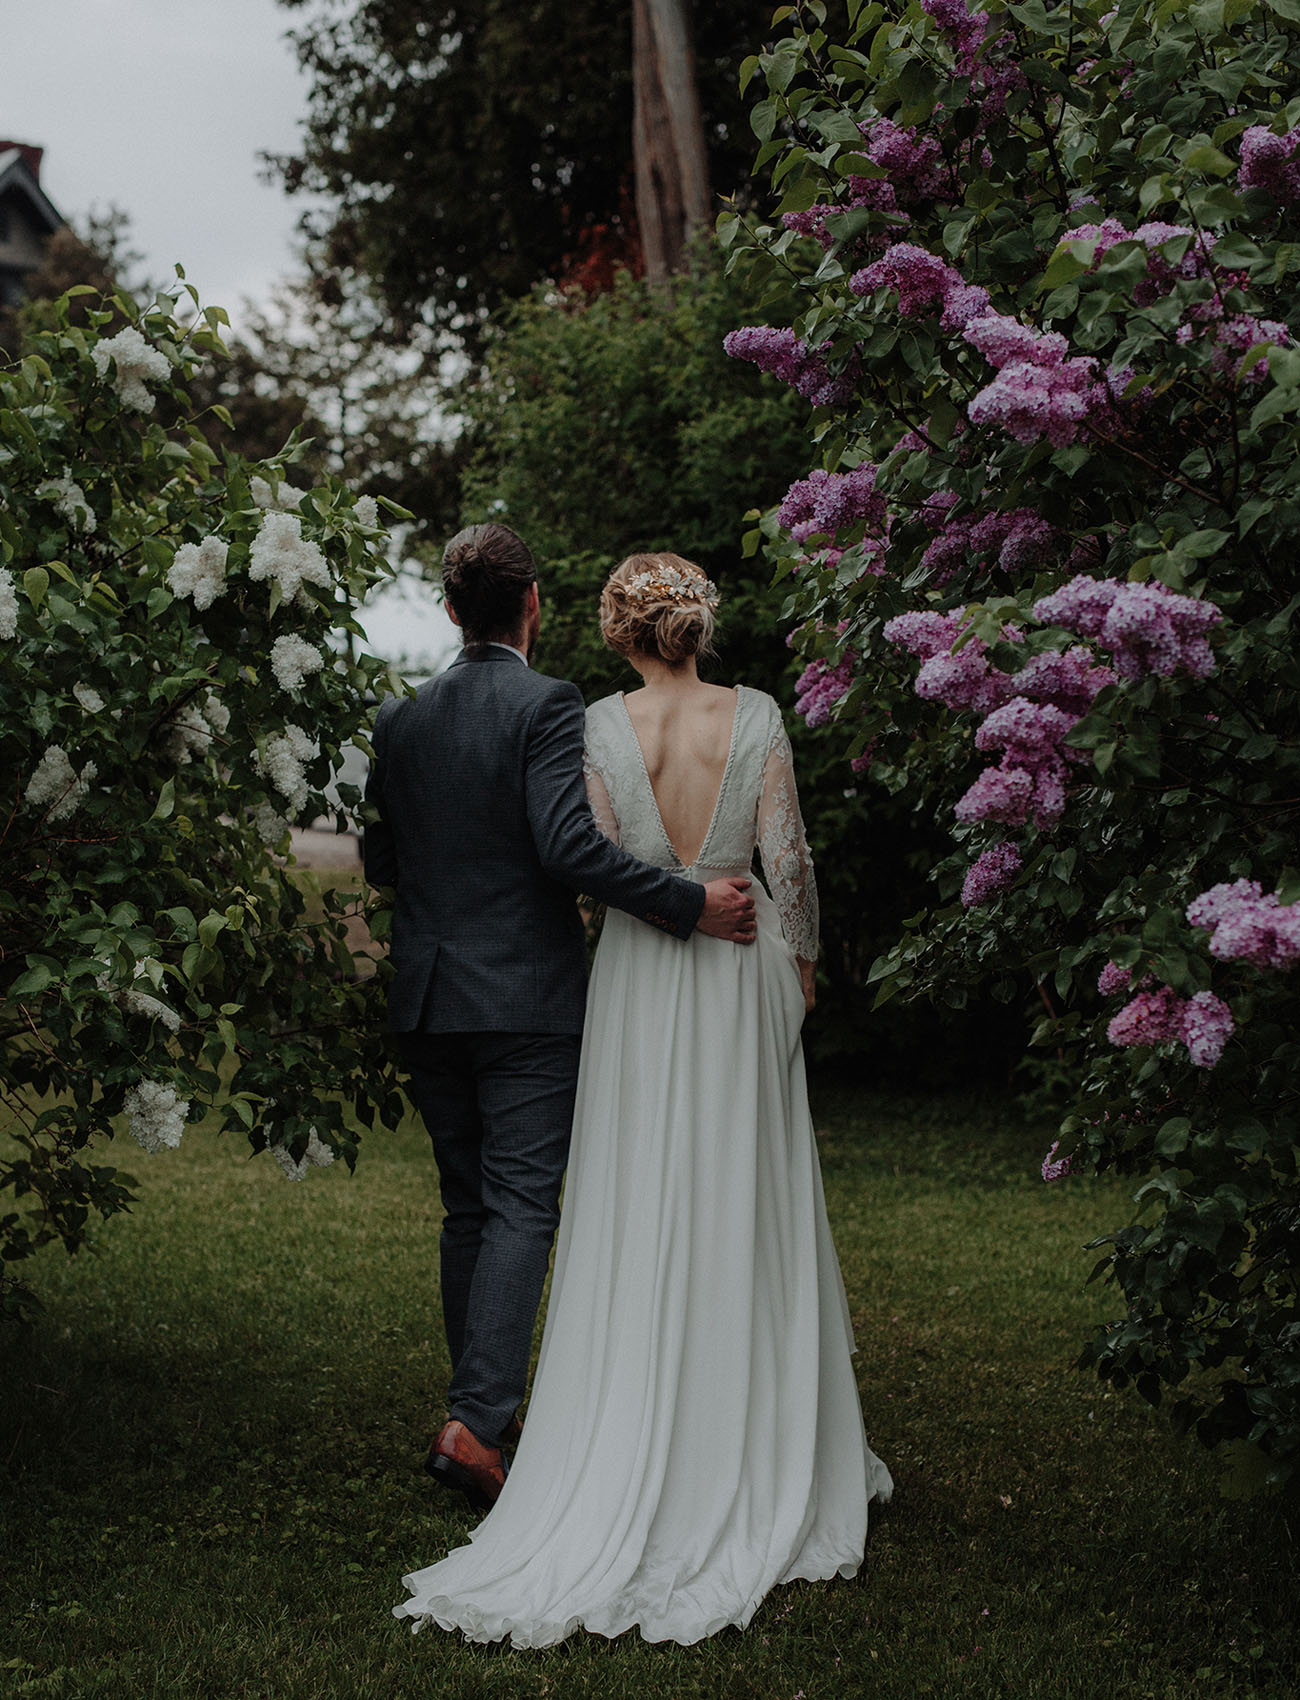 Wedding Dresses Vermont : Intimate vintage inspired vermont wedding erin mike